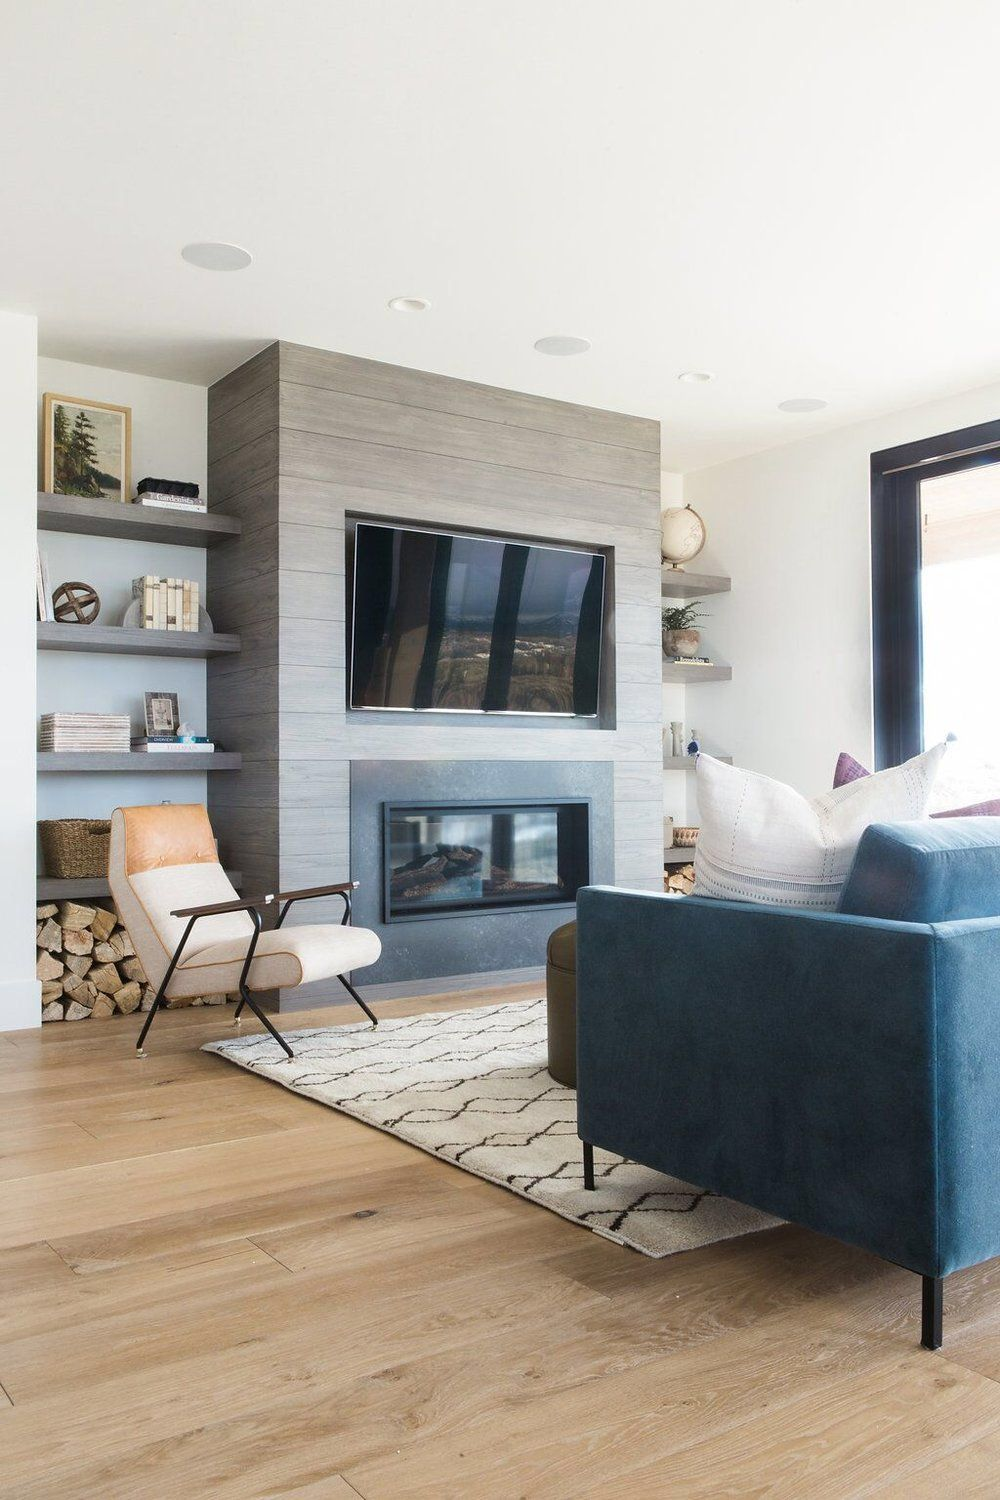 Interior design-ideen wohnzimmer mit tv simple tile plank wrapped tv recess angled  kamin in